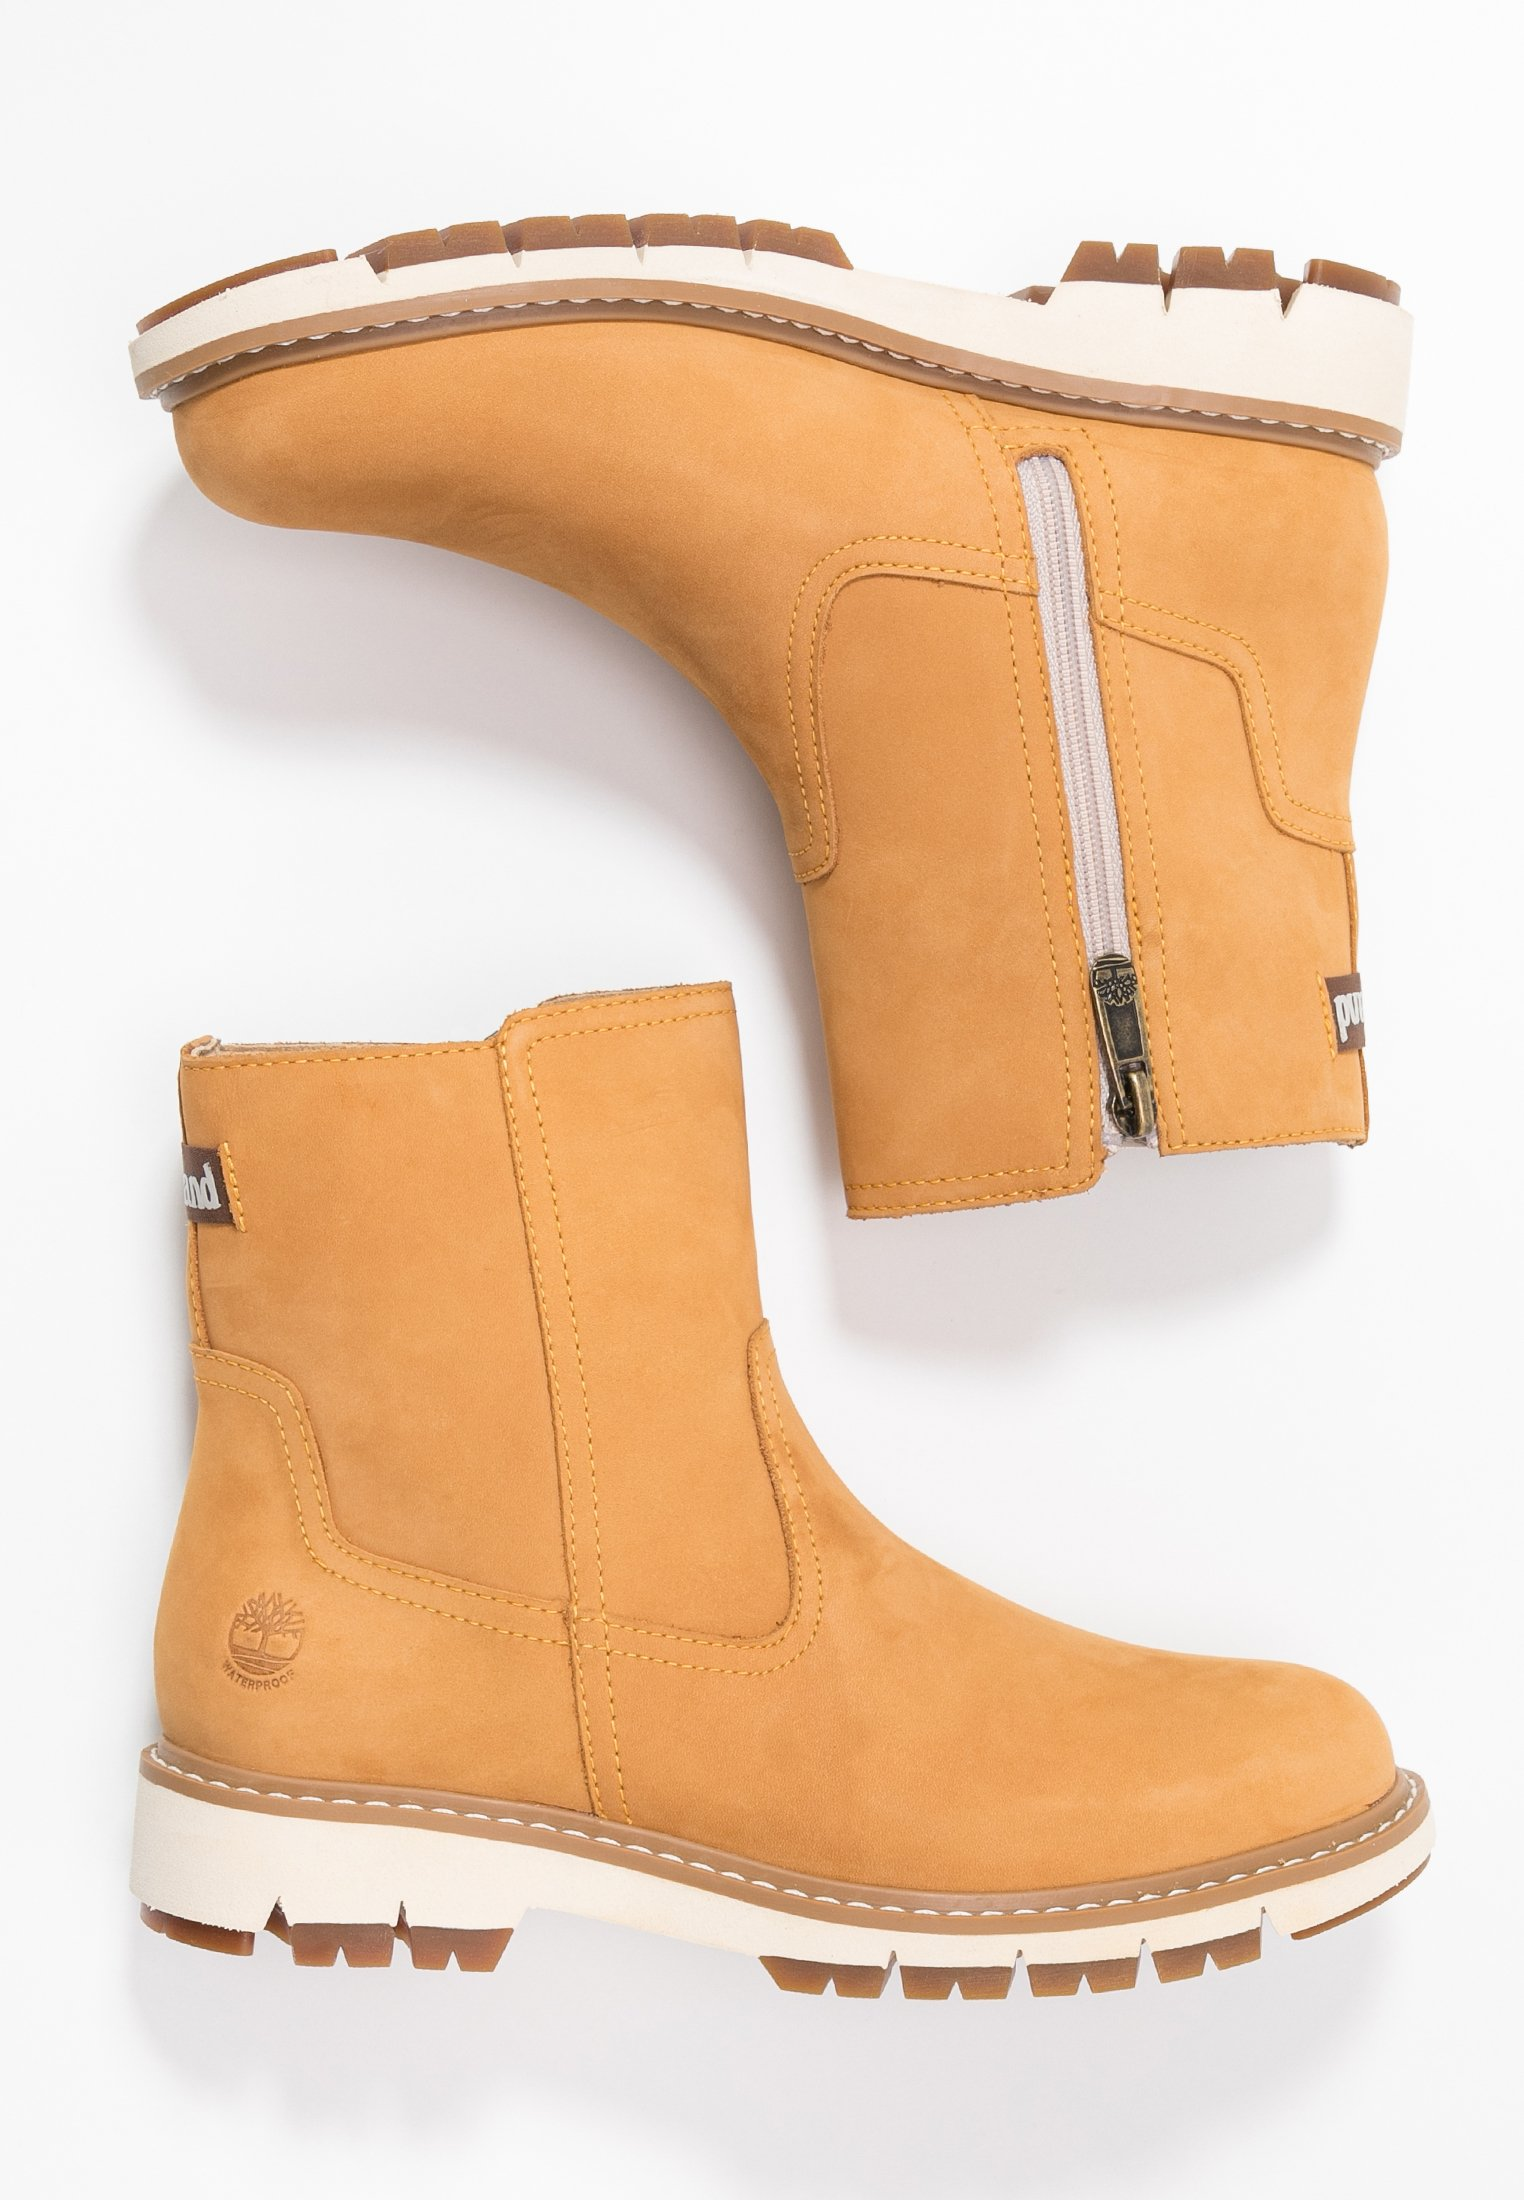 Timberland LUCIA WAY LOW BOOTIE Stiefelette wheat